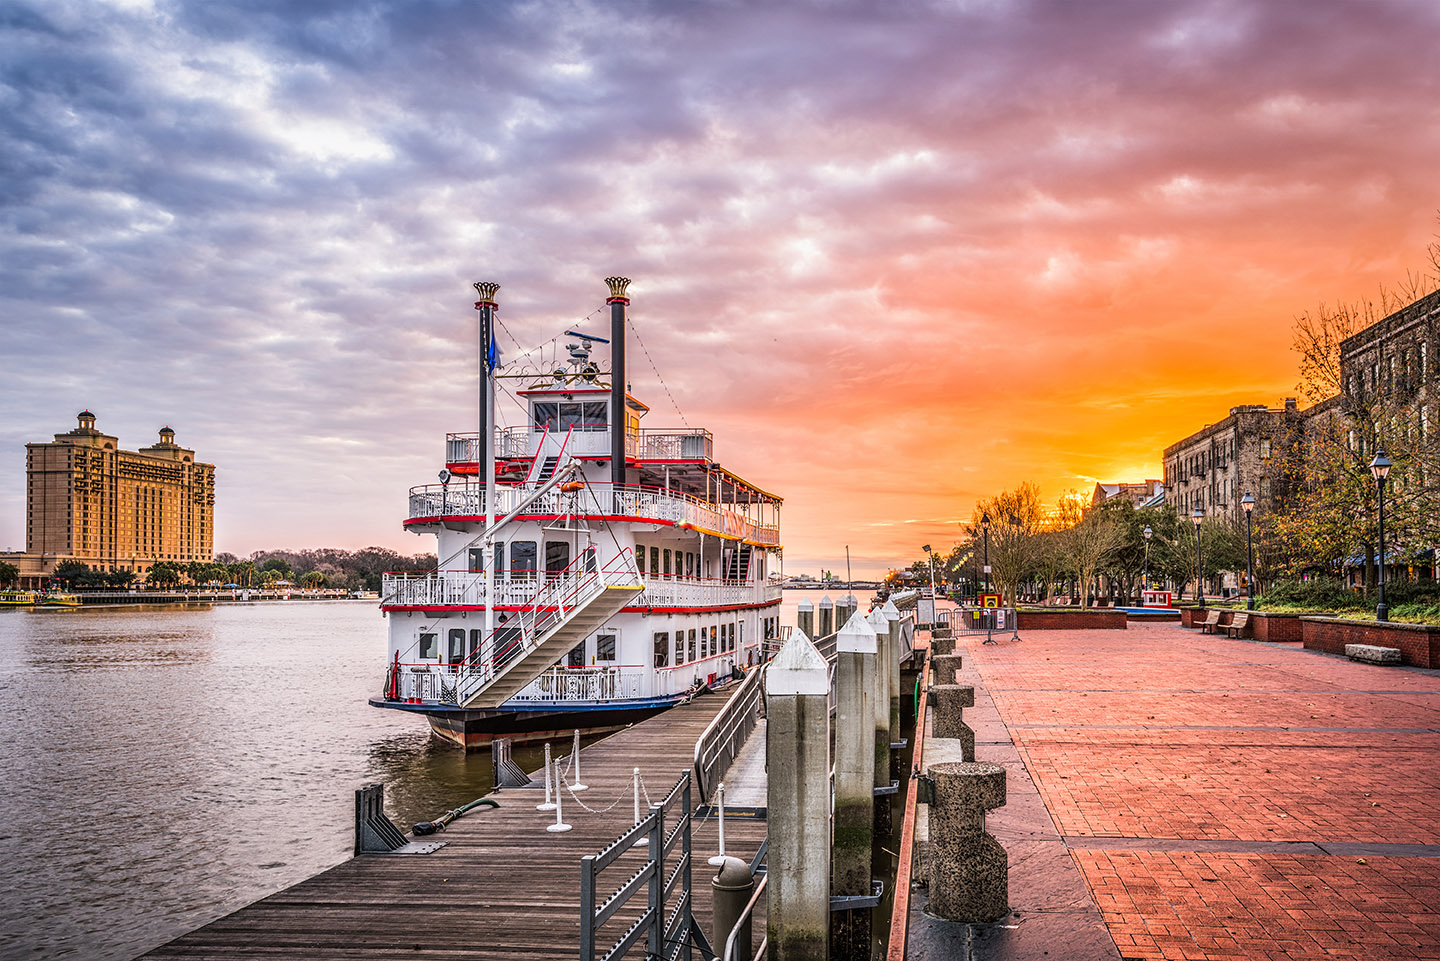 Boat Cruise - Things to do in Savannah